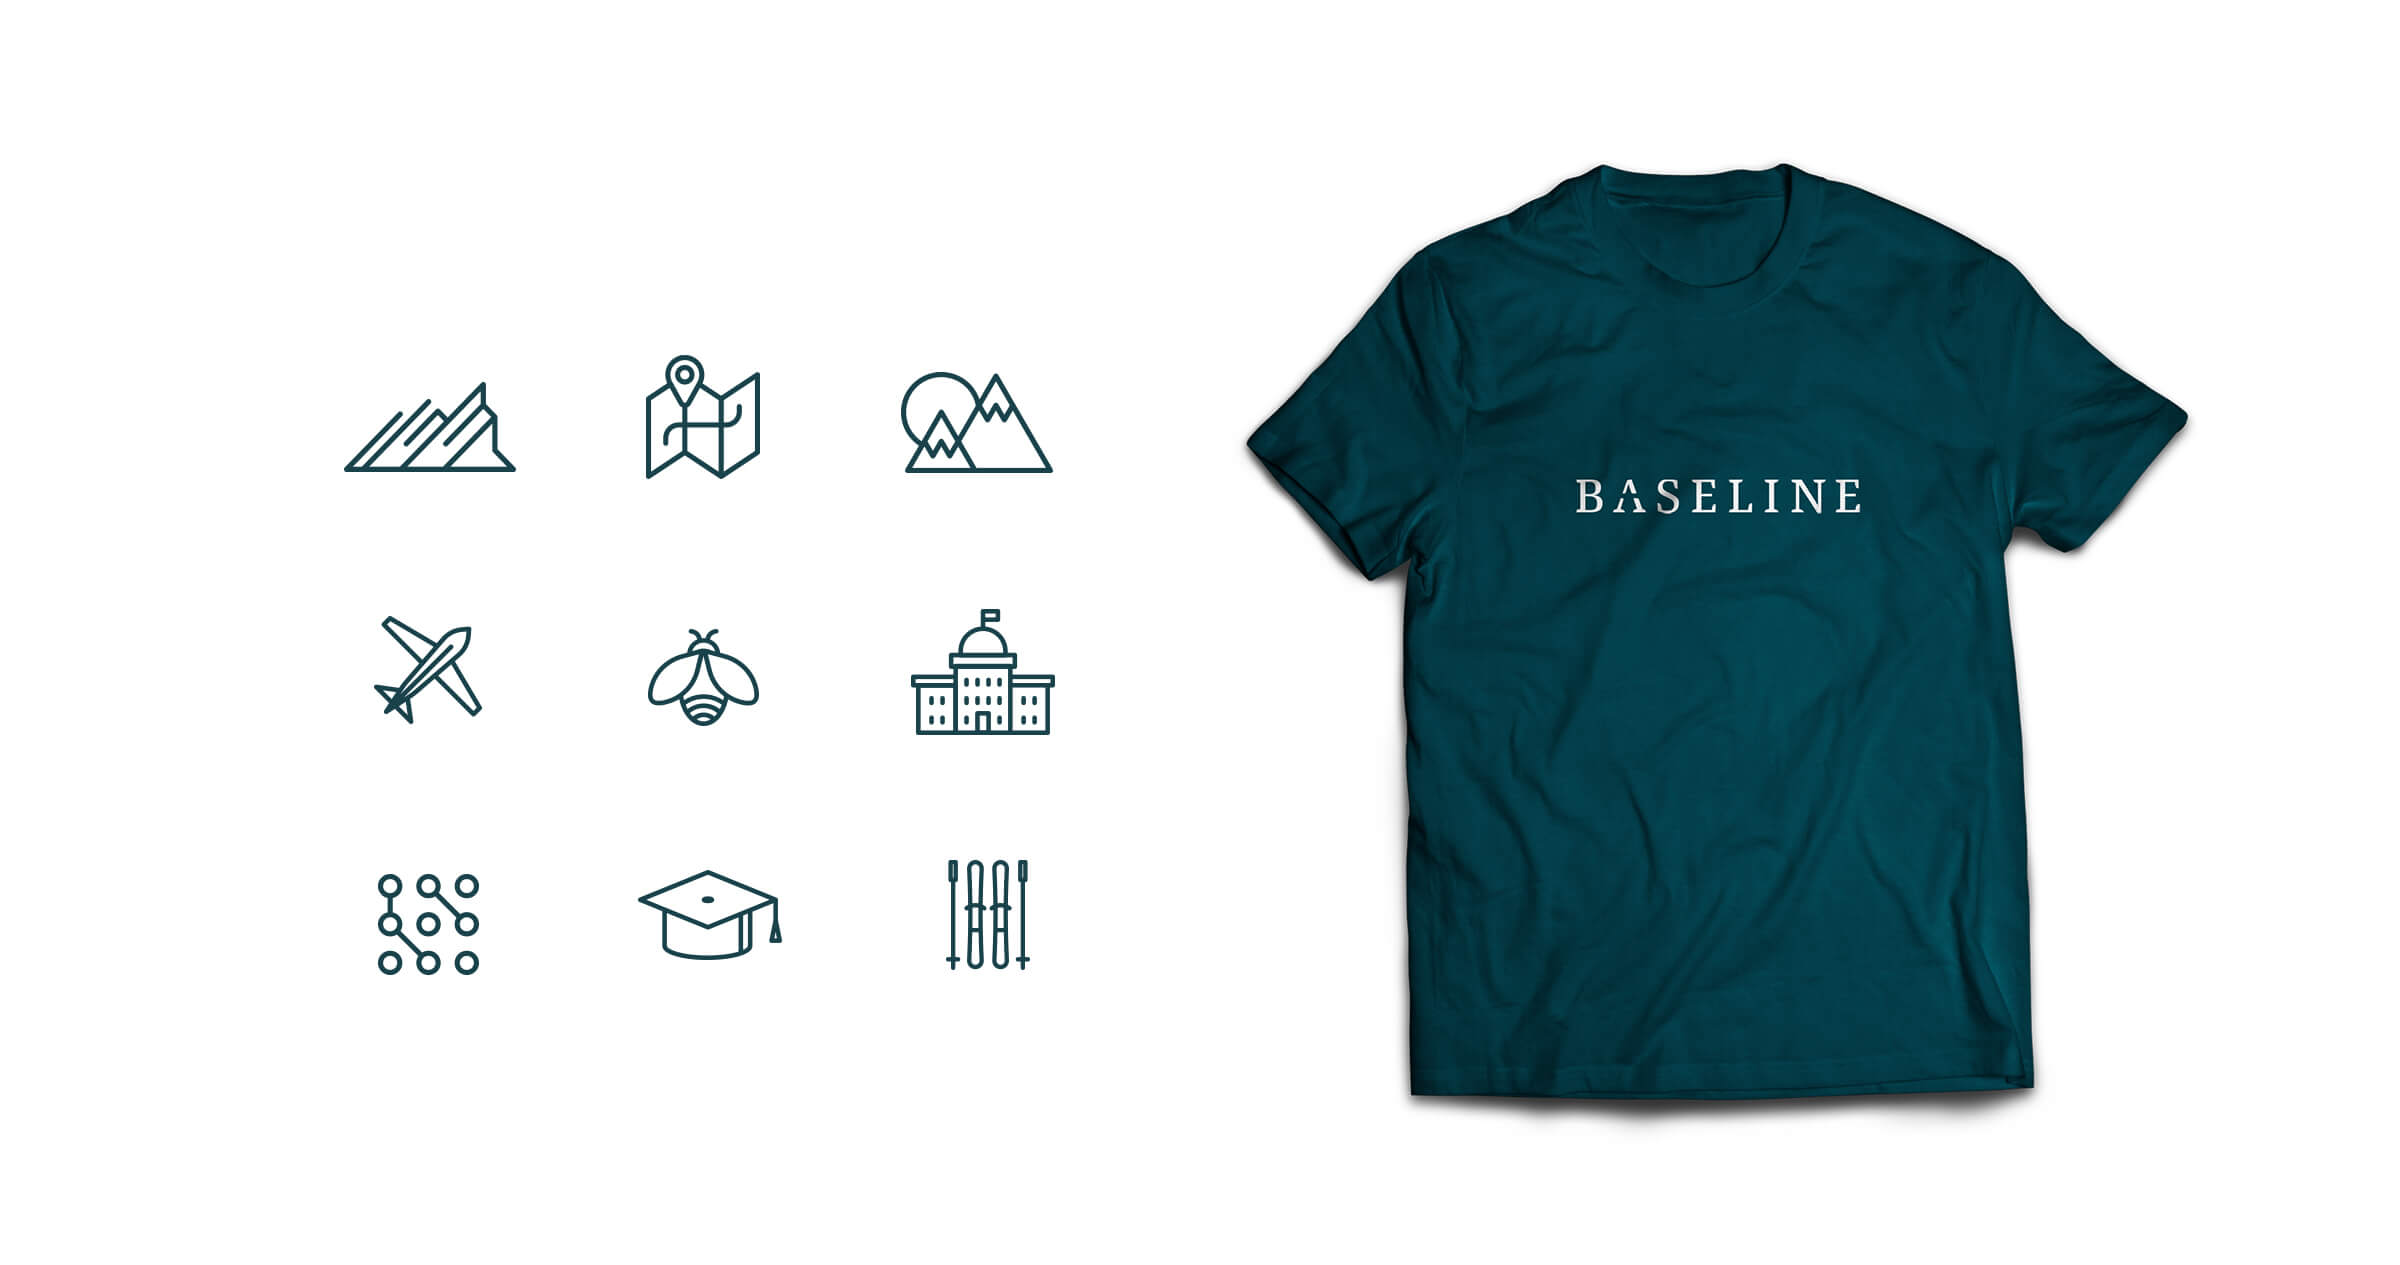 Baseline Icons and Apparel